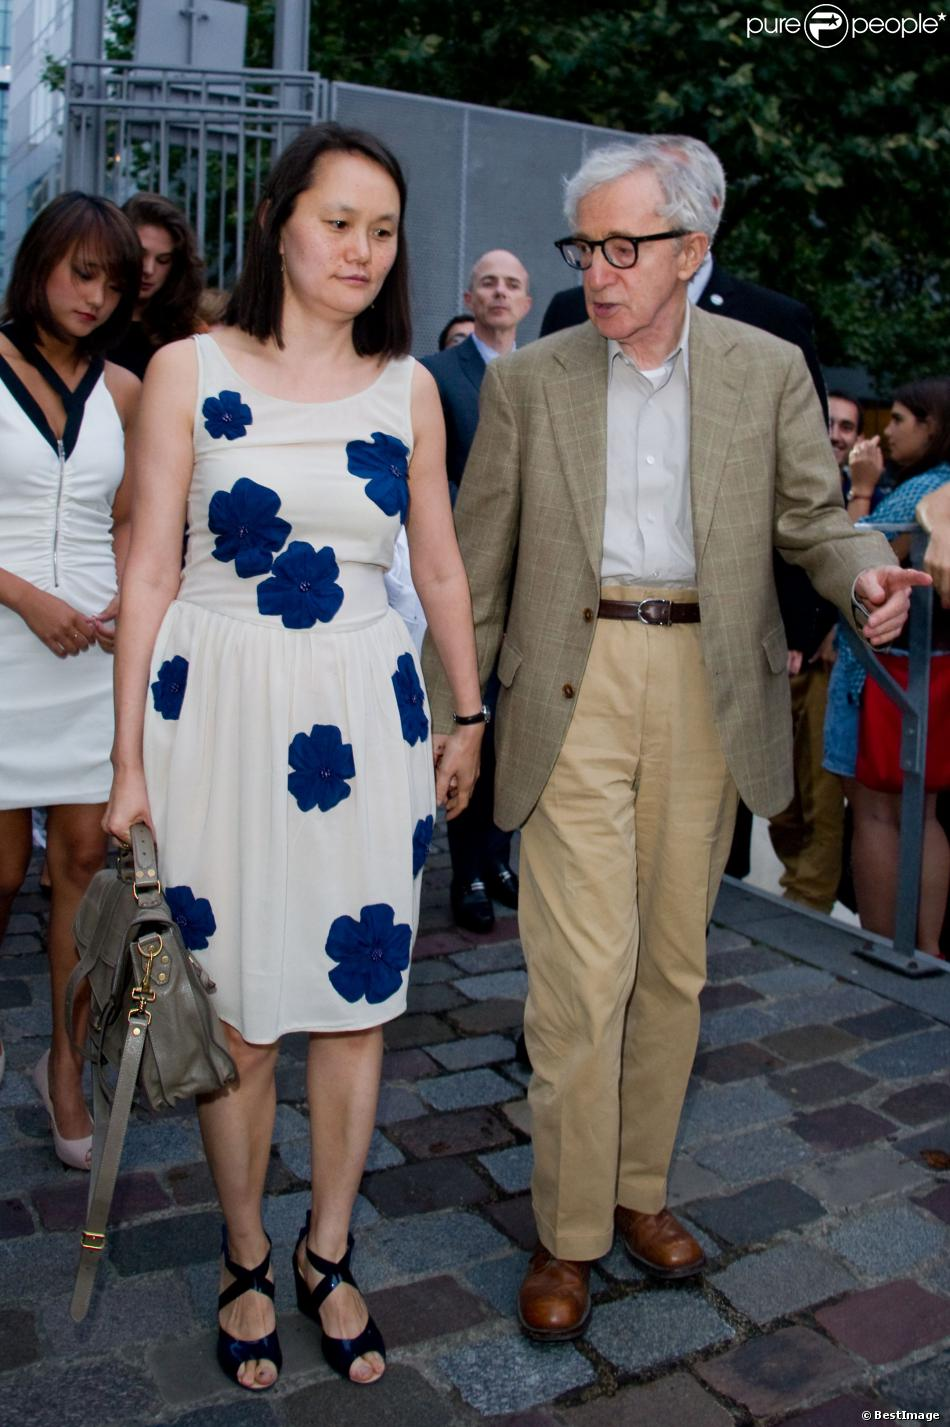 Woody Allen And Soon Yi 2013 2013 10 10  woody allenWoody Allen Soon Yi 2013